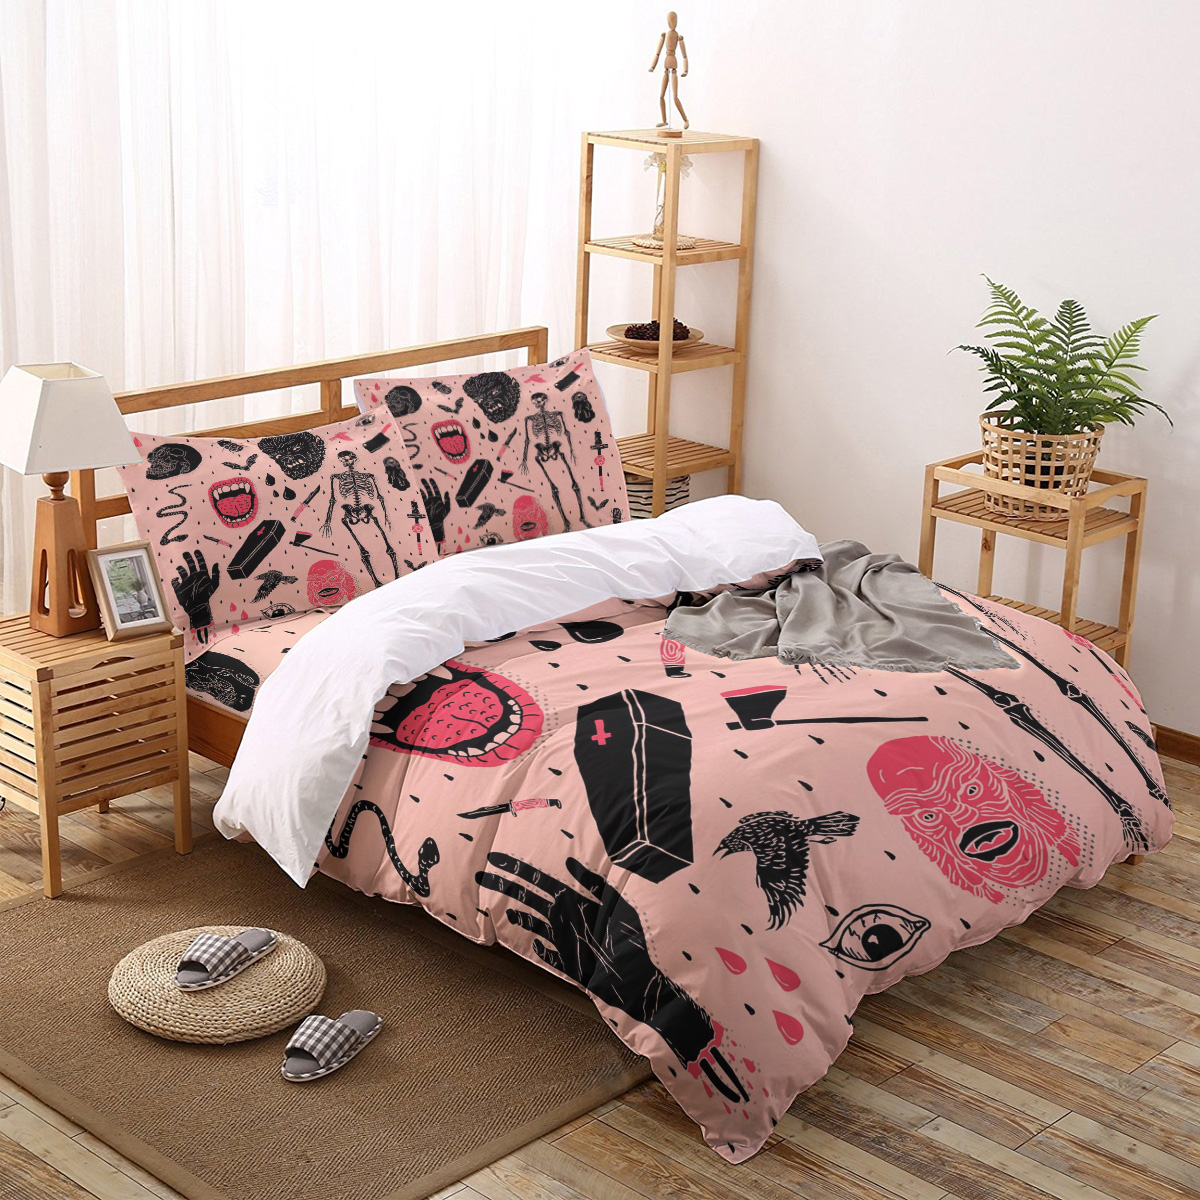 Hot Selling Whole Lotta Horror Printed Duvet Cover Set 4 Piece Bedding Set Home Textile Customizable